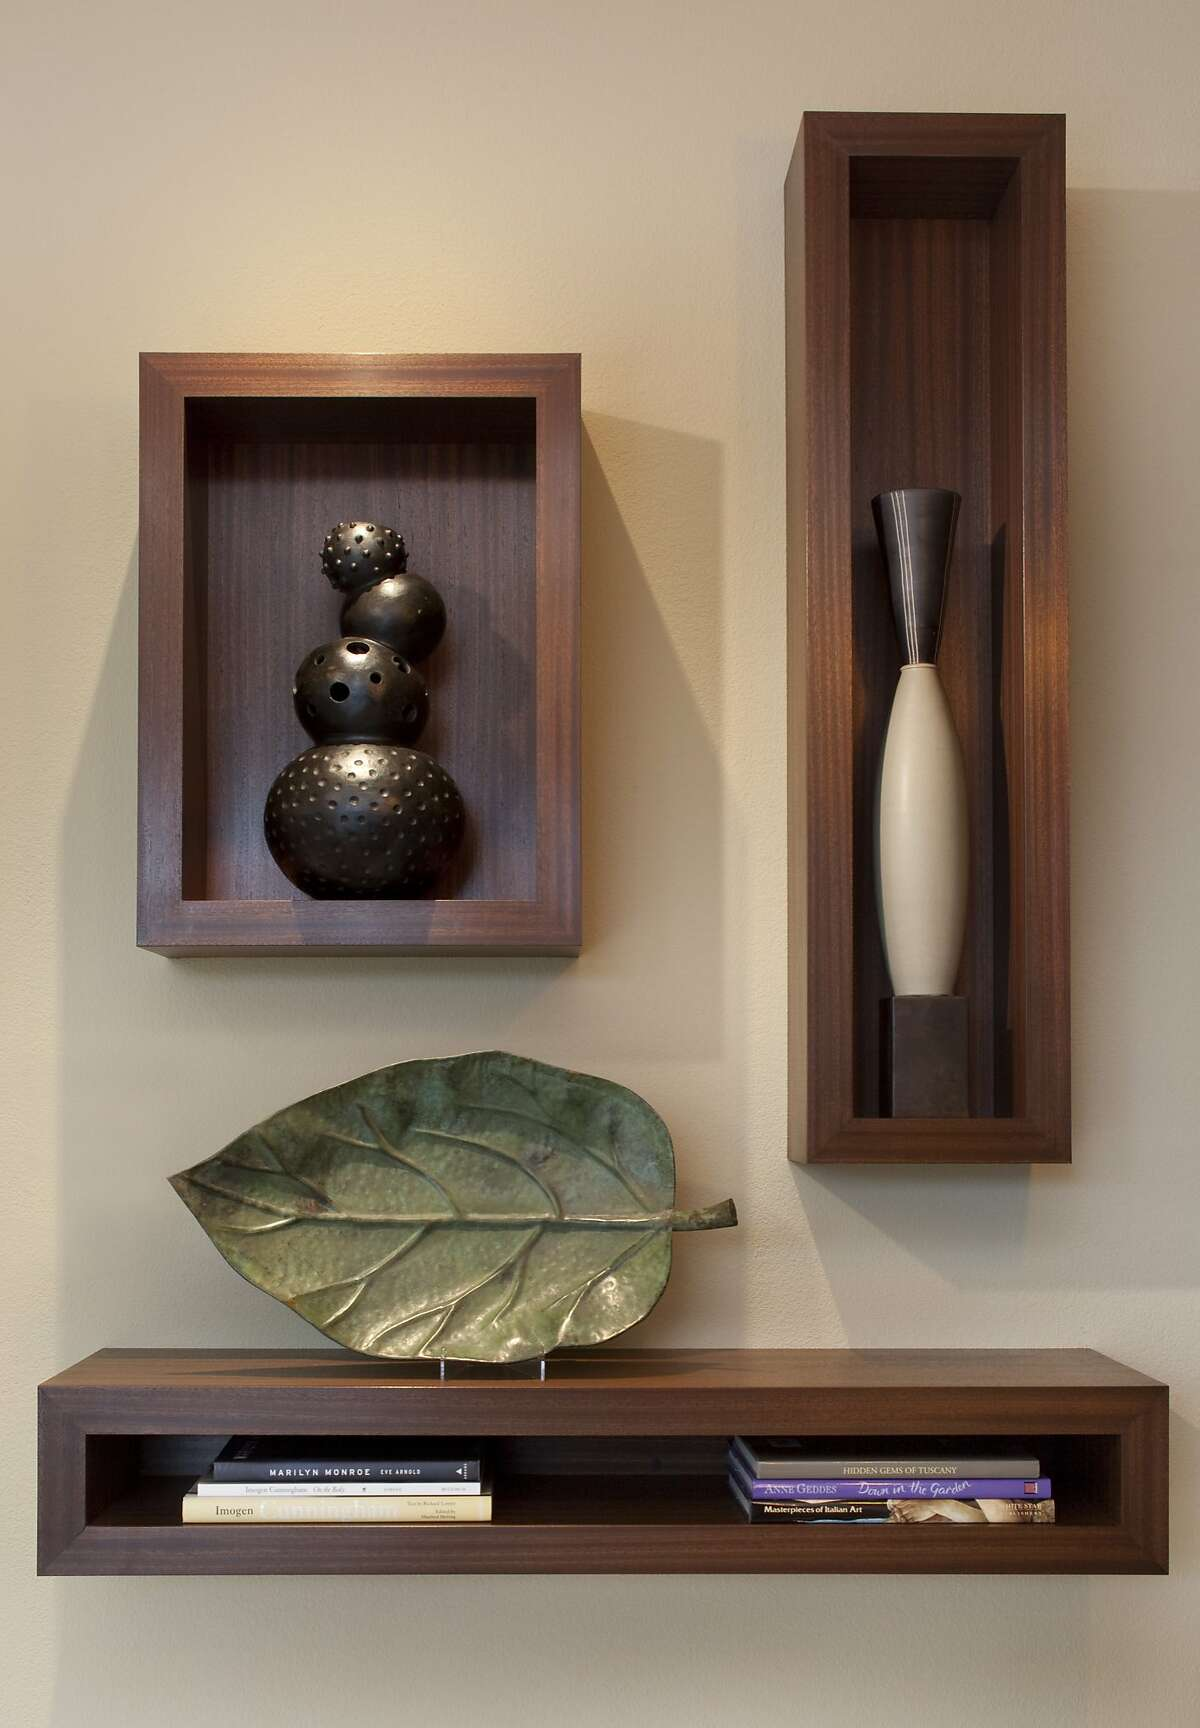 A mainstay in Tiburon, interior designer Ruth Livingston's storefront offers a variety of special finds, from jewelry and handmade purses to silk screen scarves and sculpture and ceramics - as well as locally manufactured furniture designed by Livingston herself.